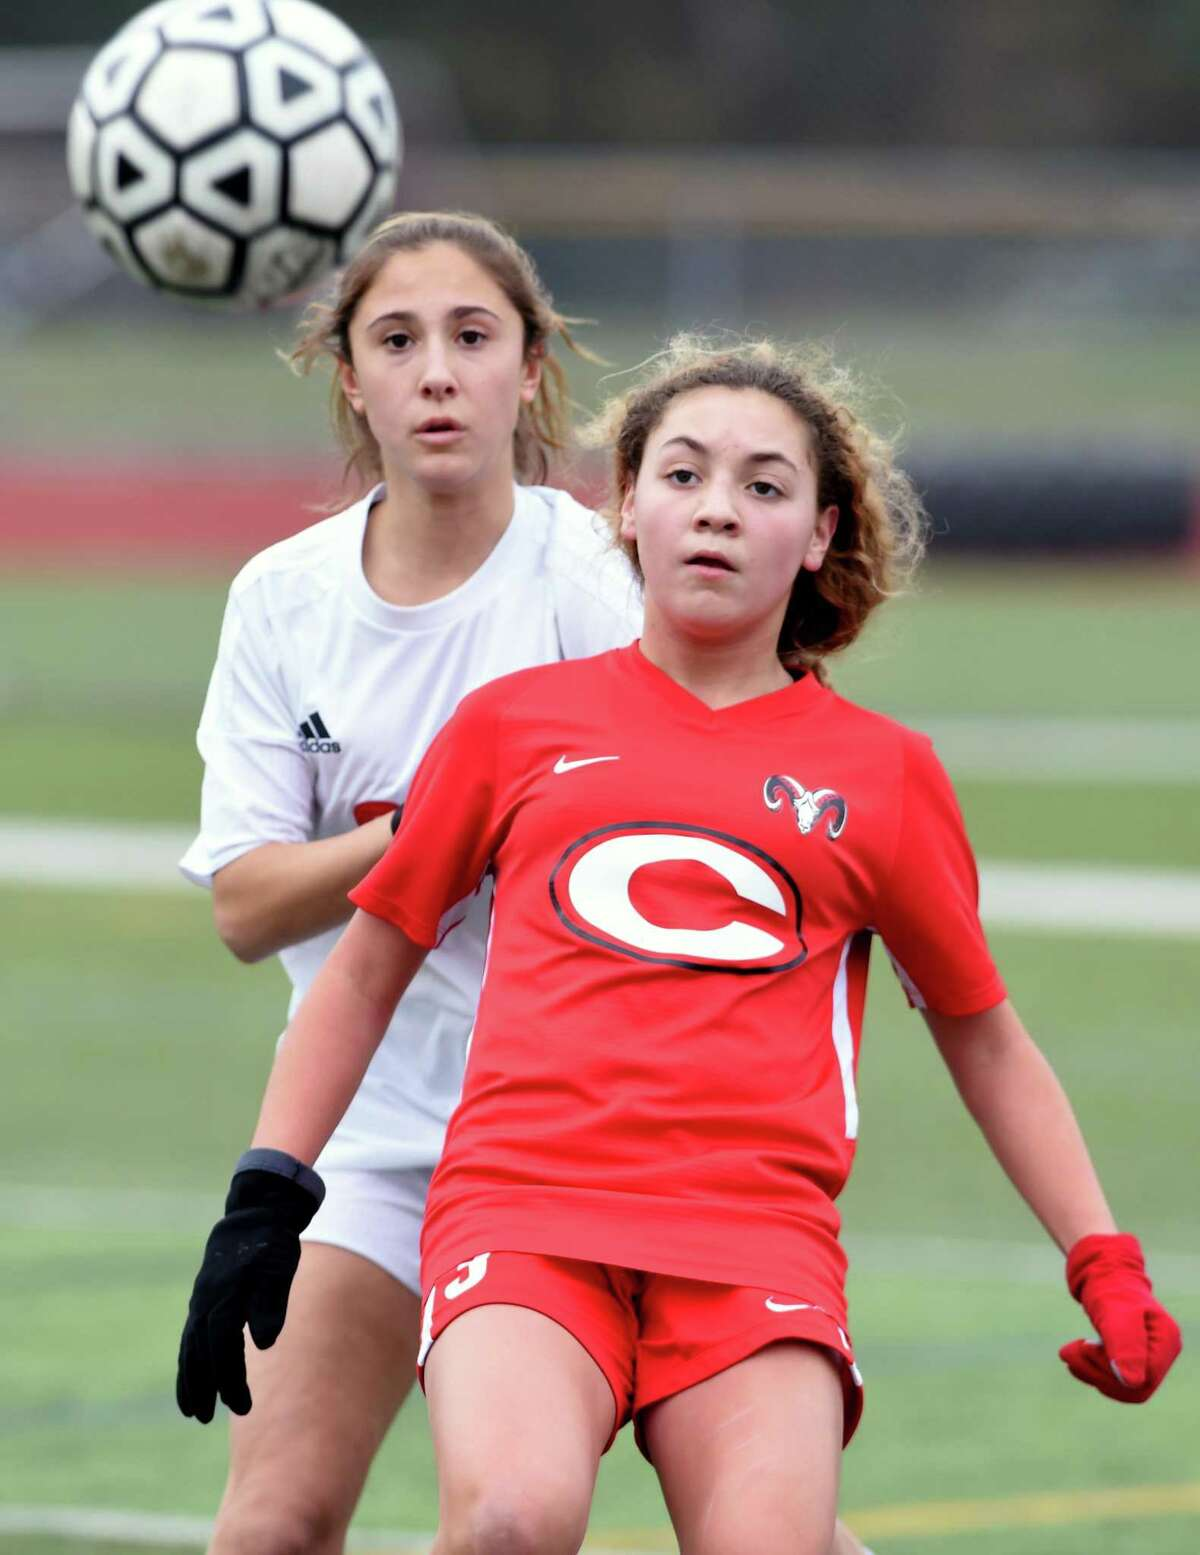 Anna Zoccolillo (left) of New Canaan and Gabriella Tirado of Cheshire maneuver for position on November 14, 2019 in a Class LL tournament game in Cheshire.